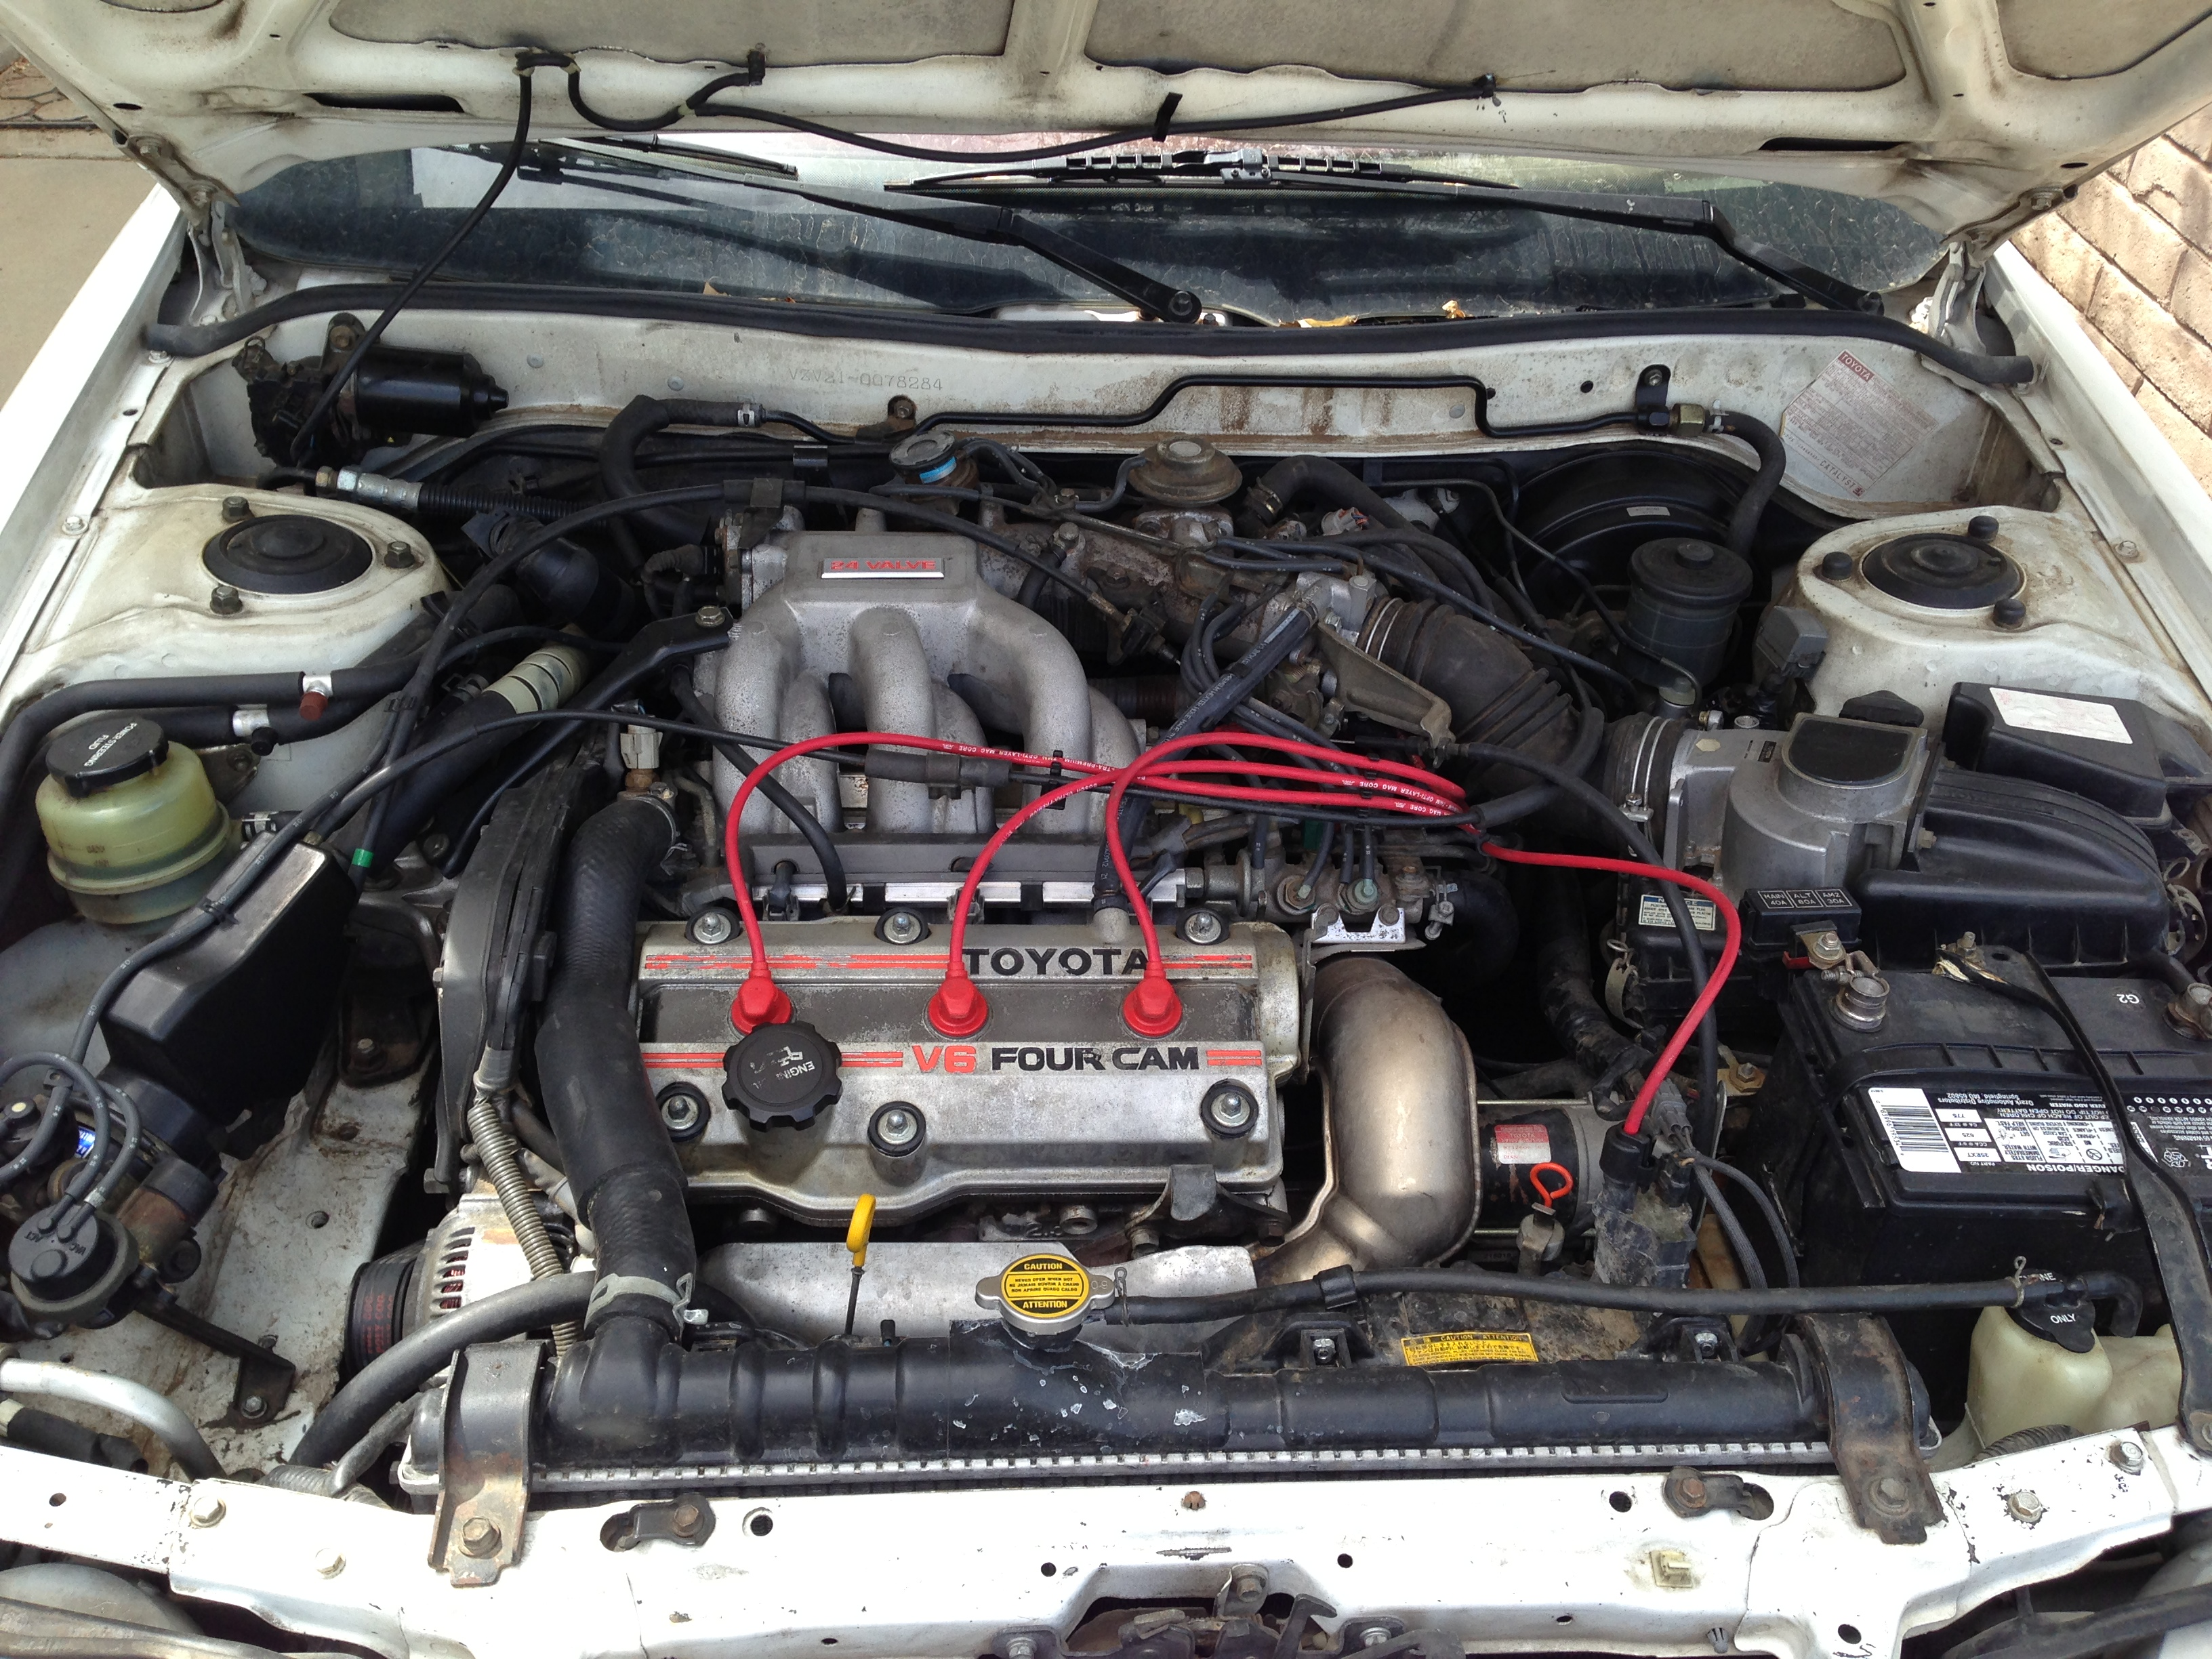 file toyota 2vz-fe engine jpg